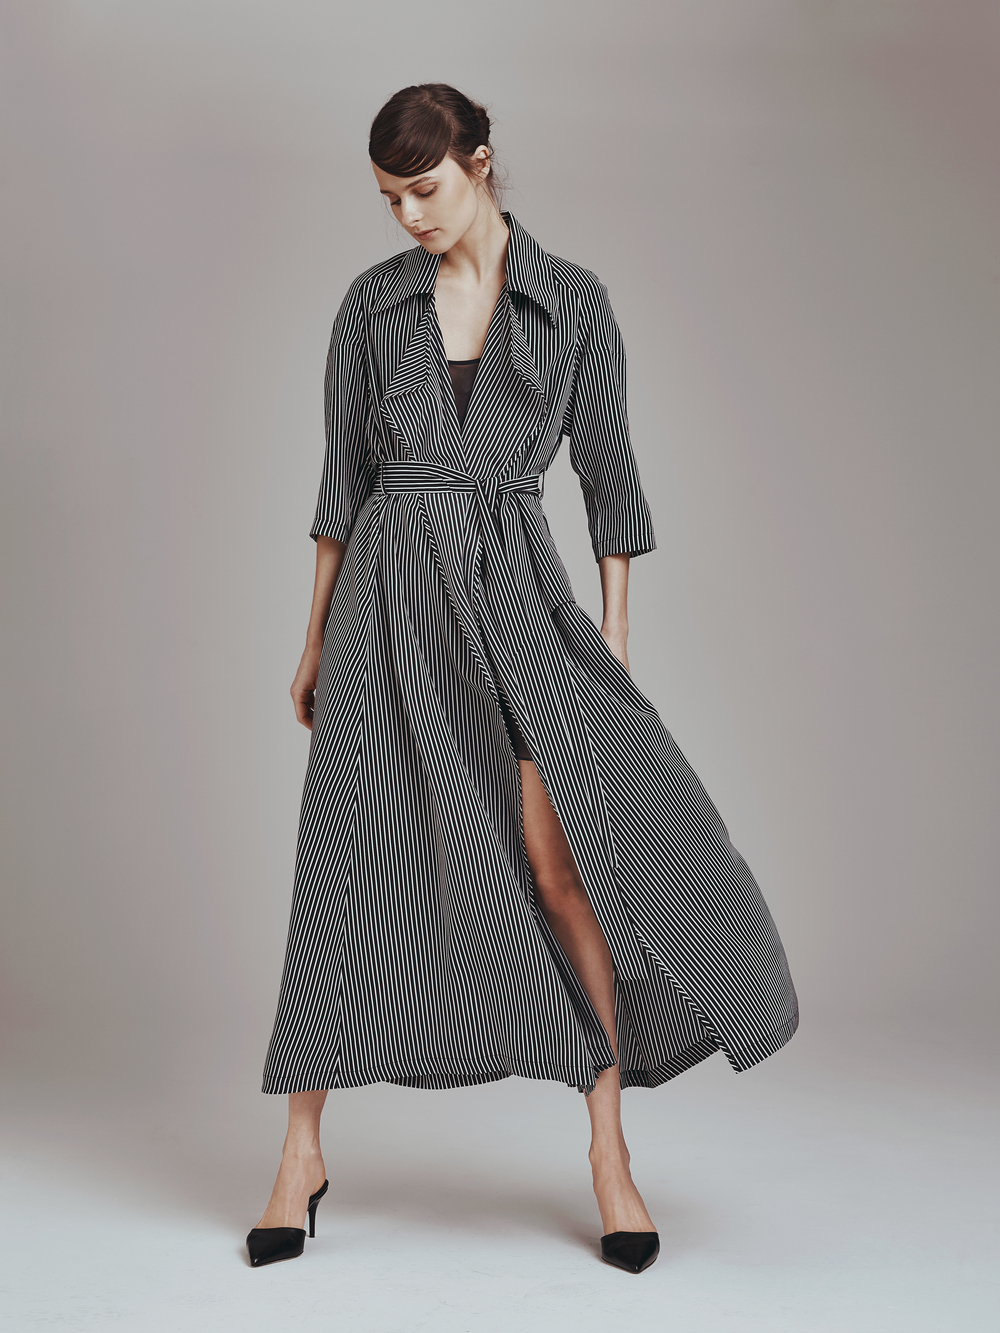 FRANCIS TRENCH  Crepe de Chine  -   SHORT SLIP IN SHEER  Crinkle Chiffon      Contact for inquiry